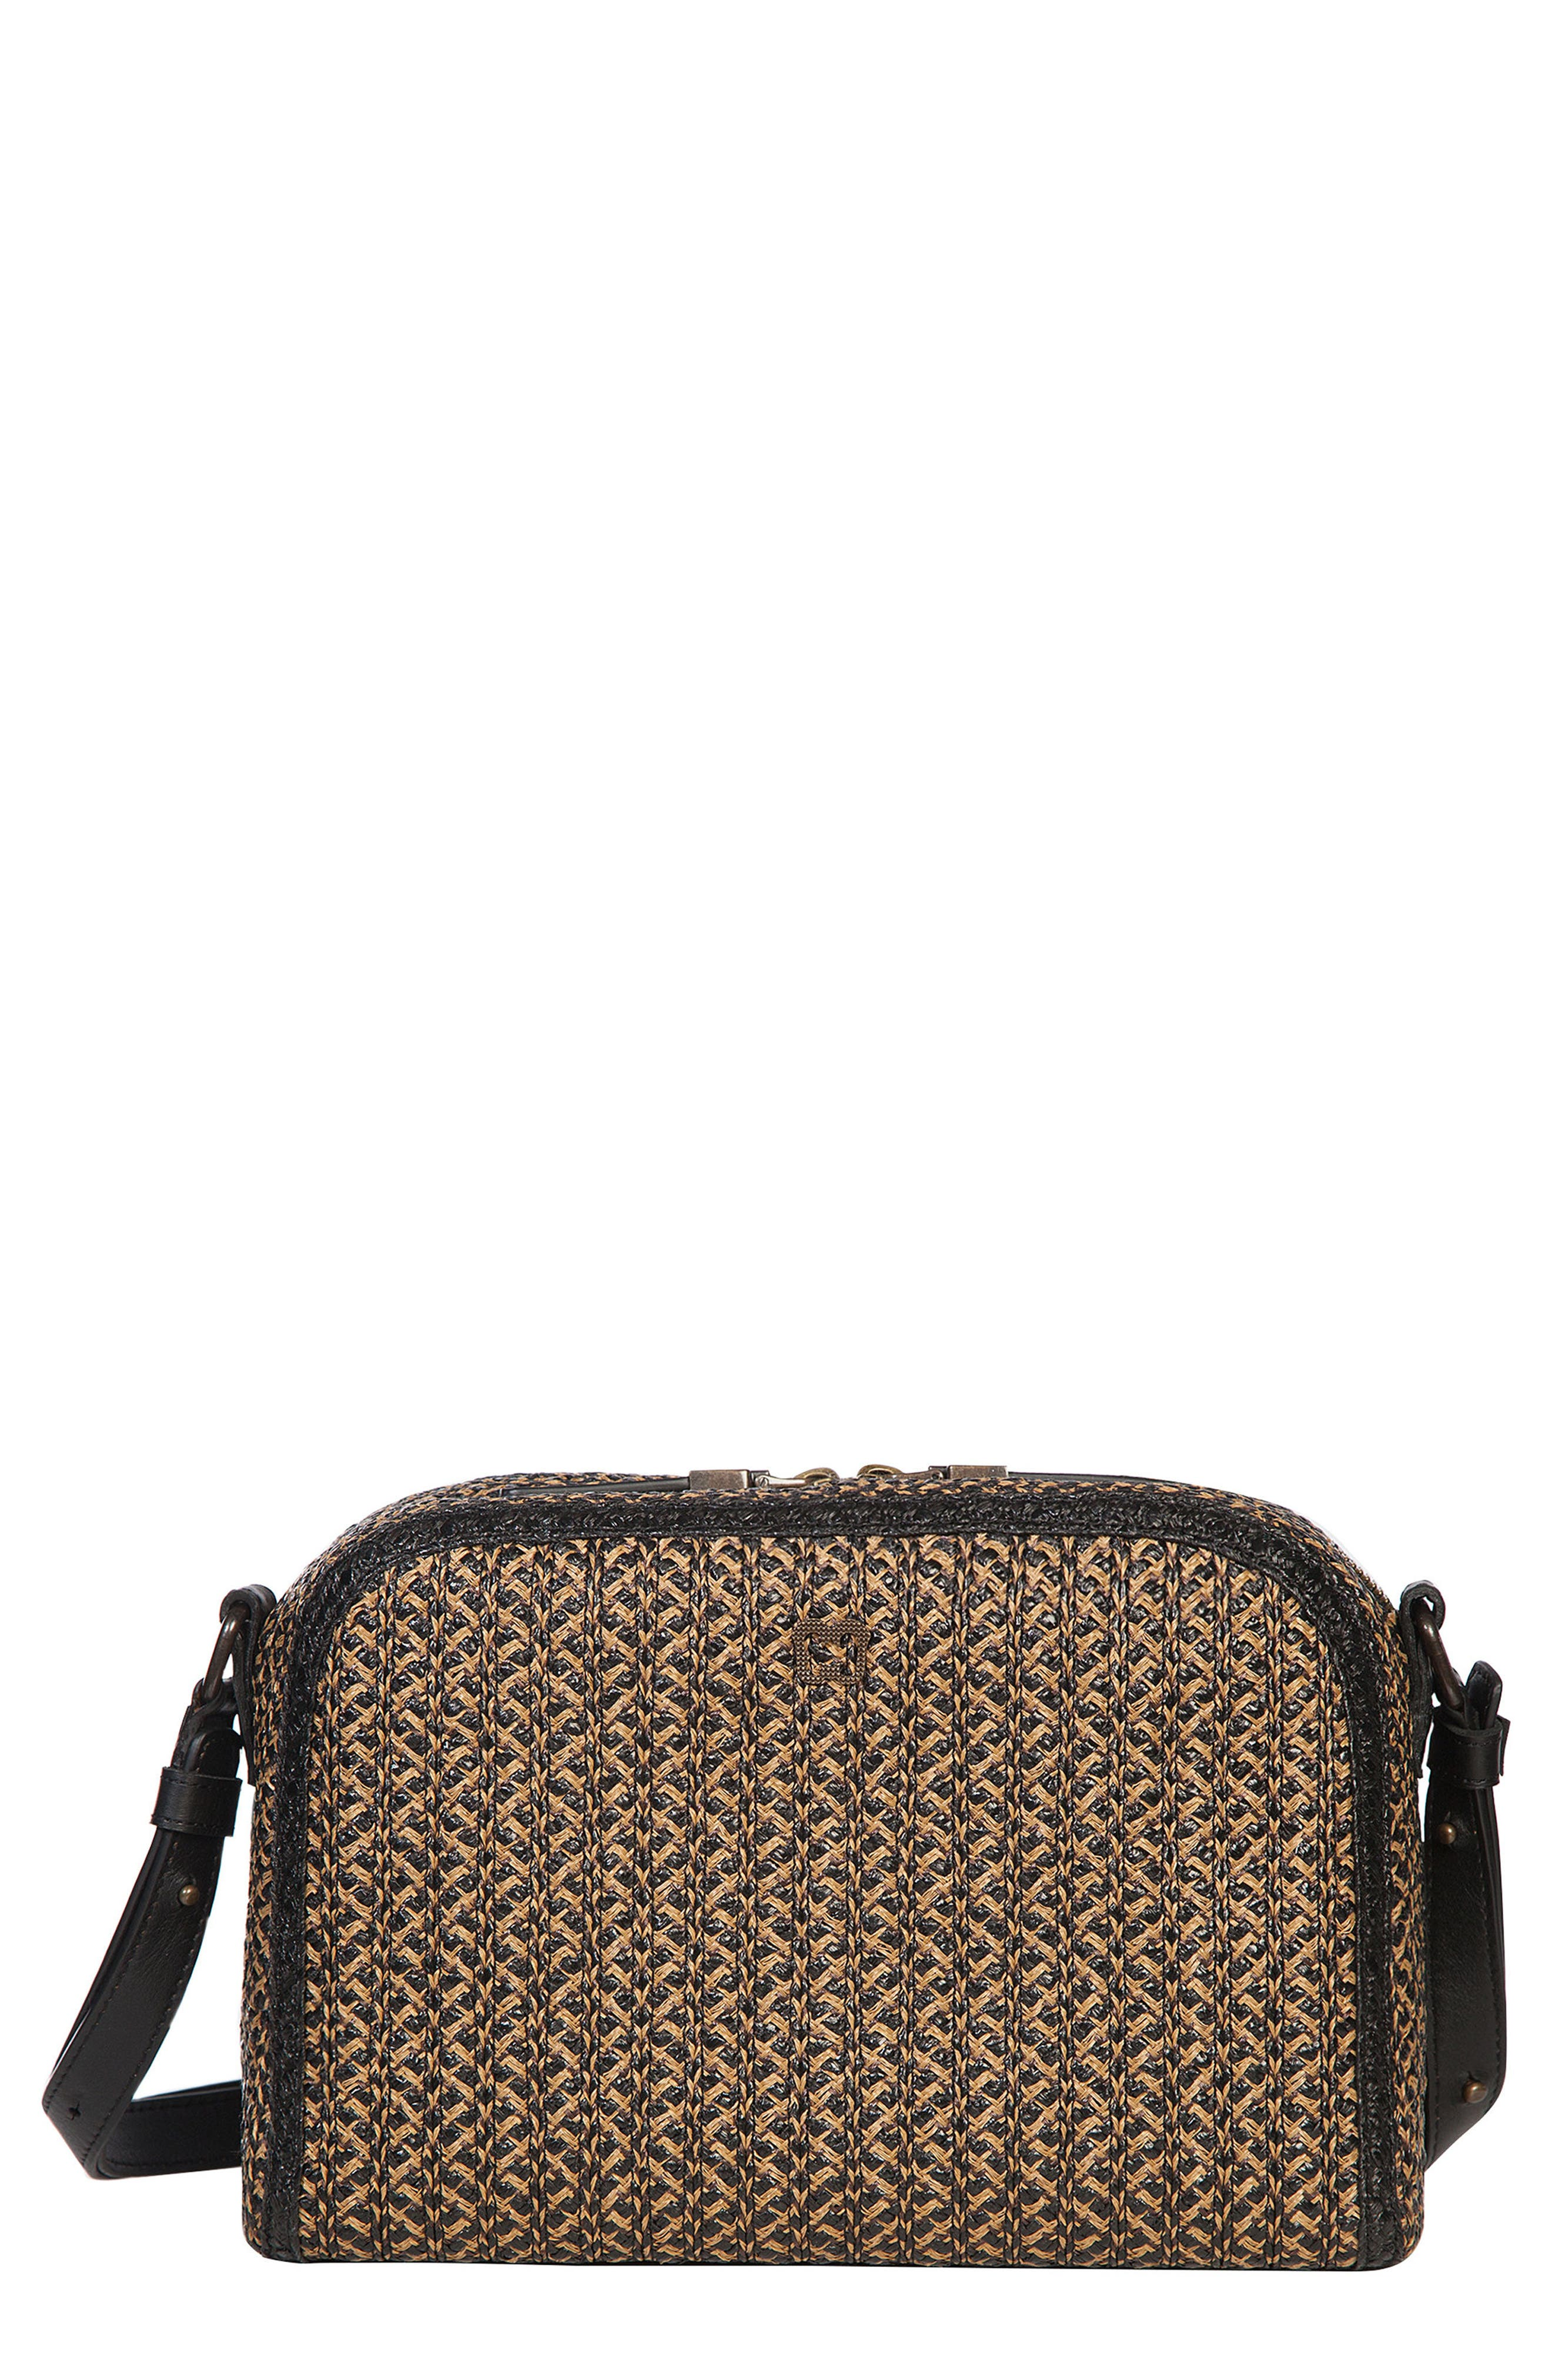 Squishee<sup>®</sup> Courbe Crossbody Bag,                         Main,                         color, Antique